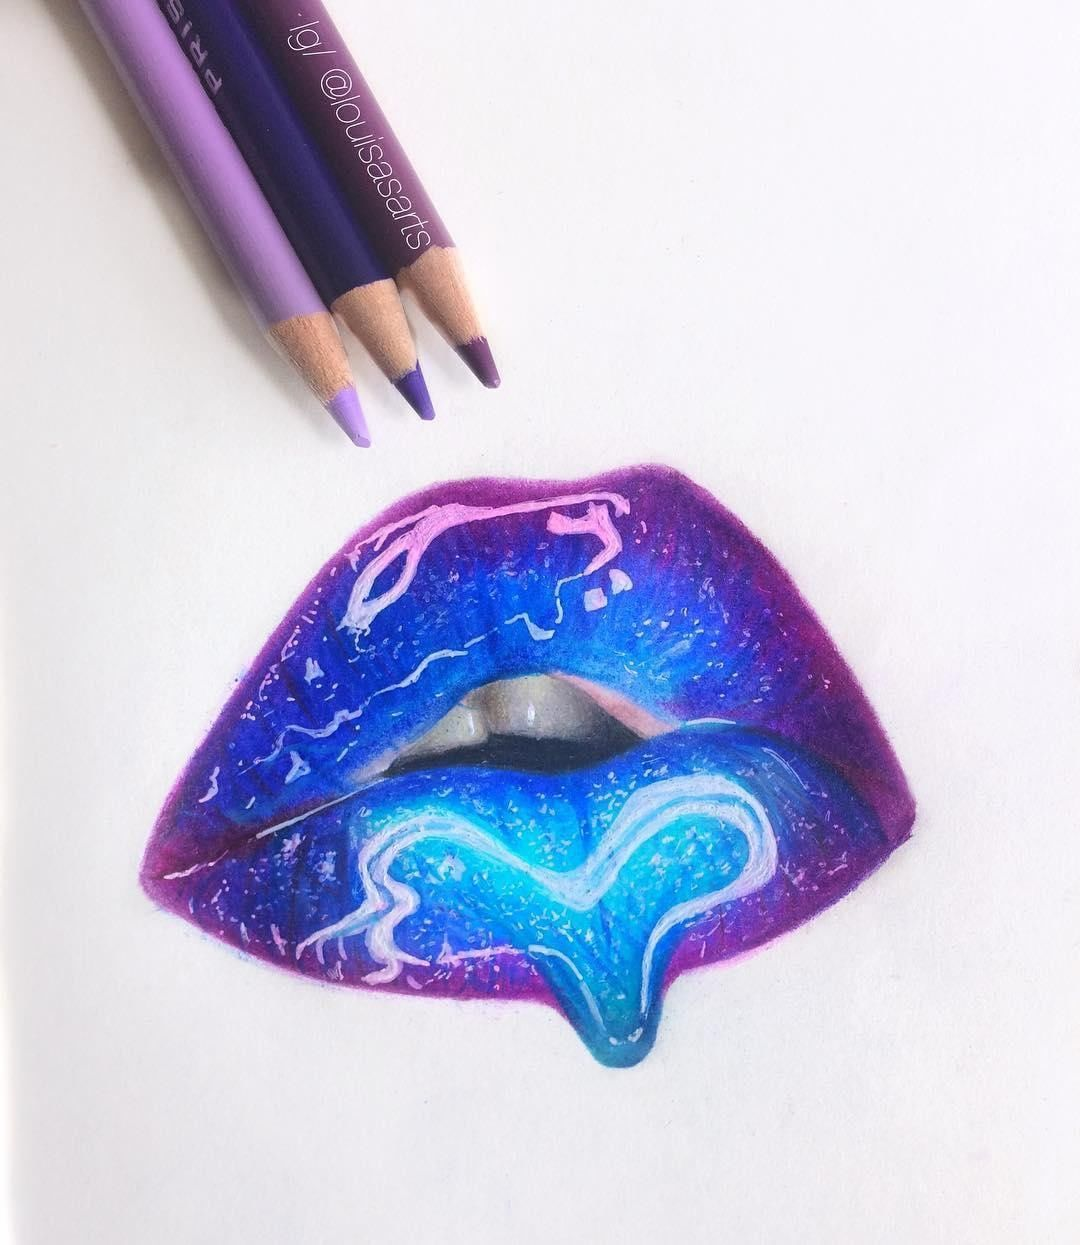 Louisasarts Creates A Glossy Finish To These Full Defined Lips